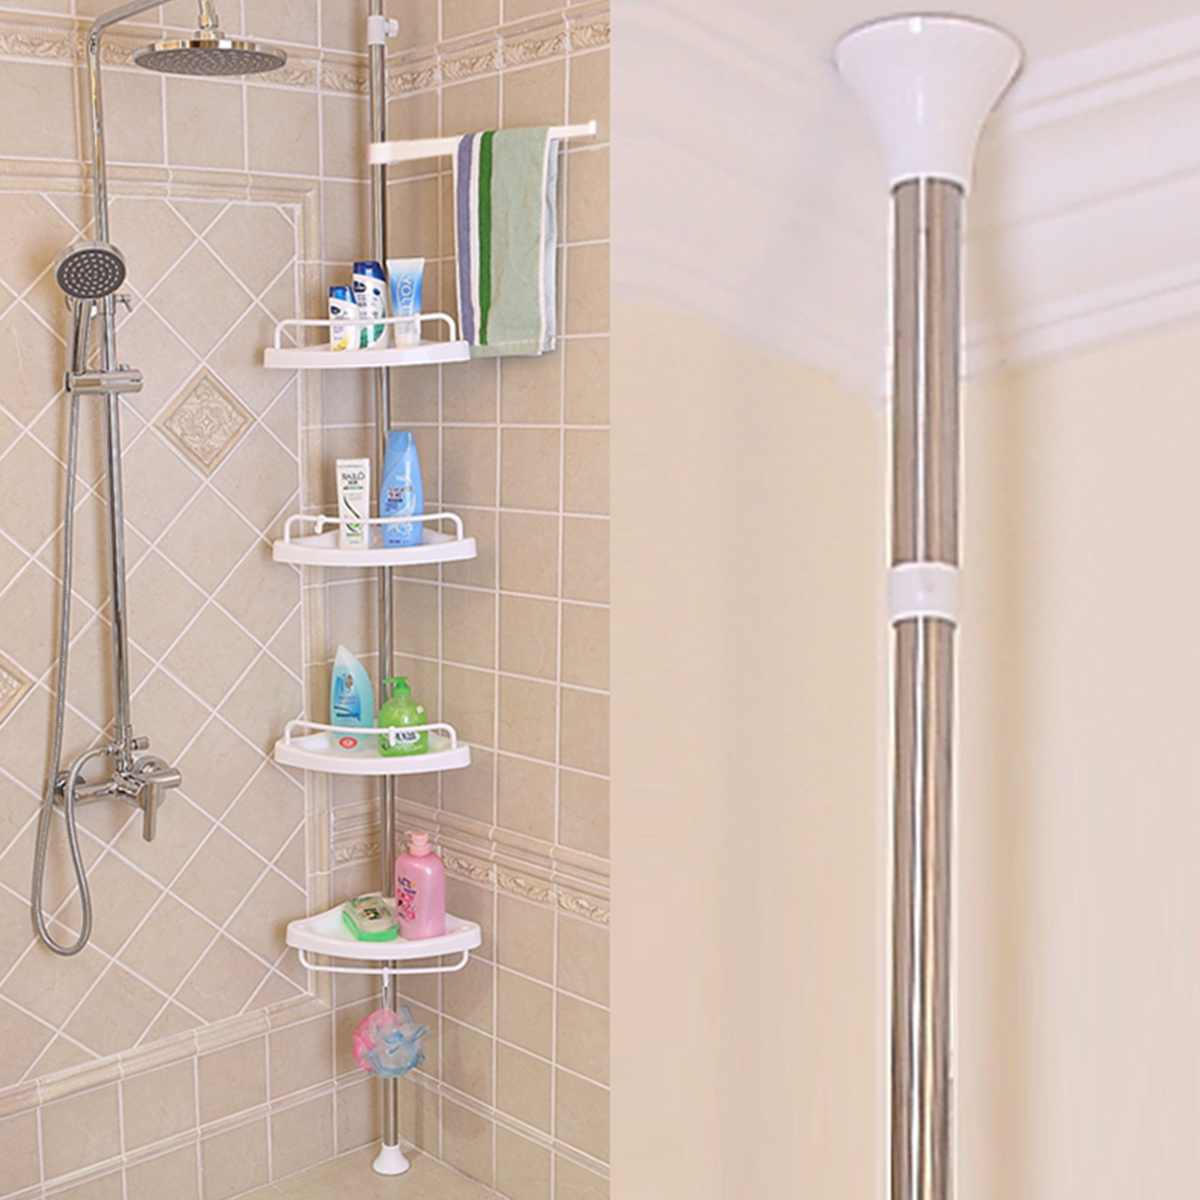 Xueqin 4 Tier Adjustable Telescopic Bathroom Corner Shower Shelf Rack Caddy Organiser Stainless Steel + PP 192-310cm White